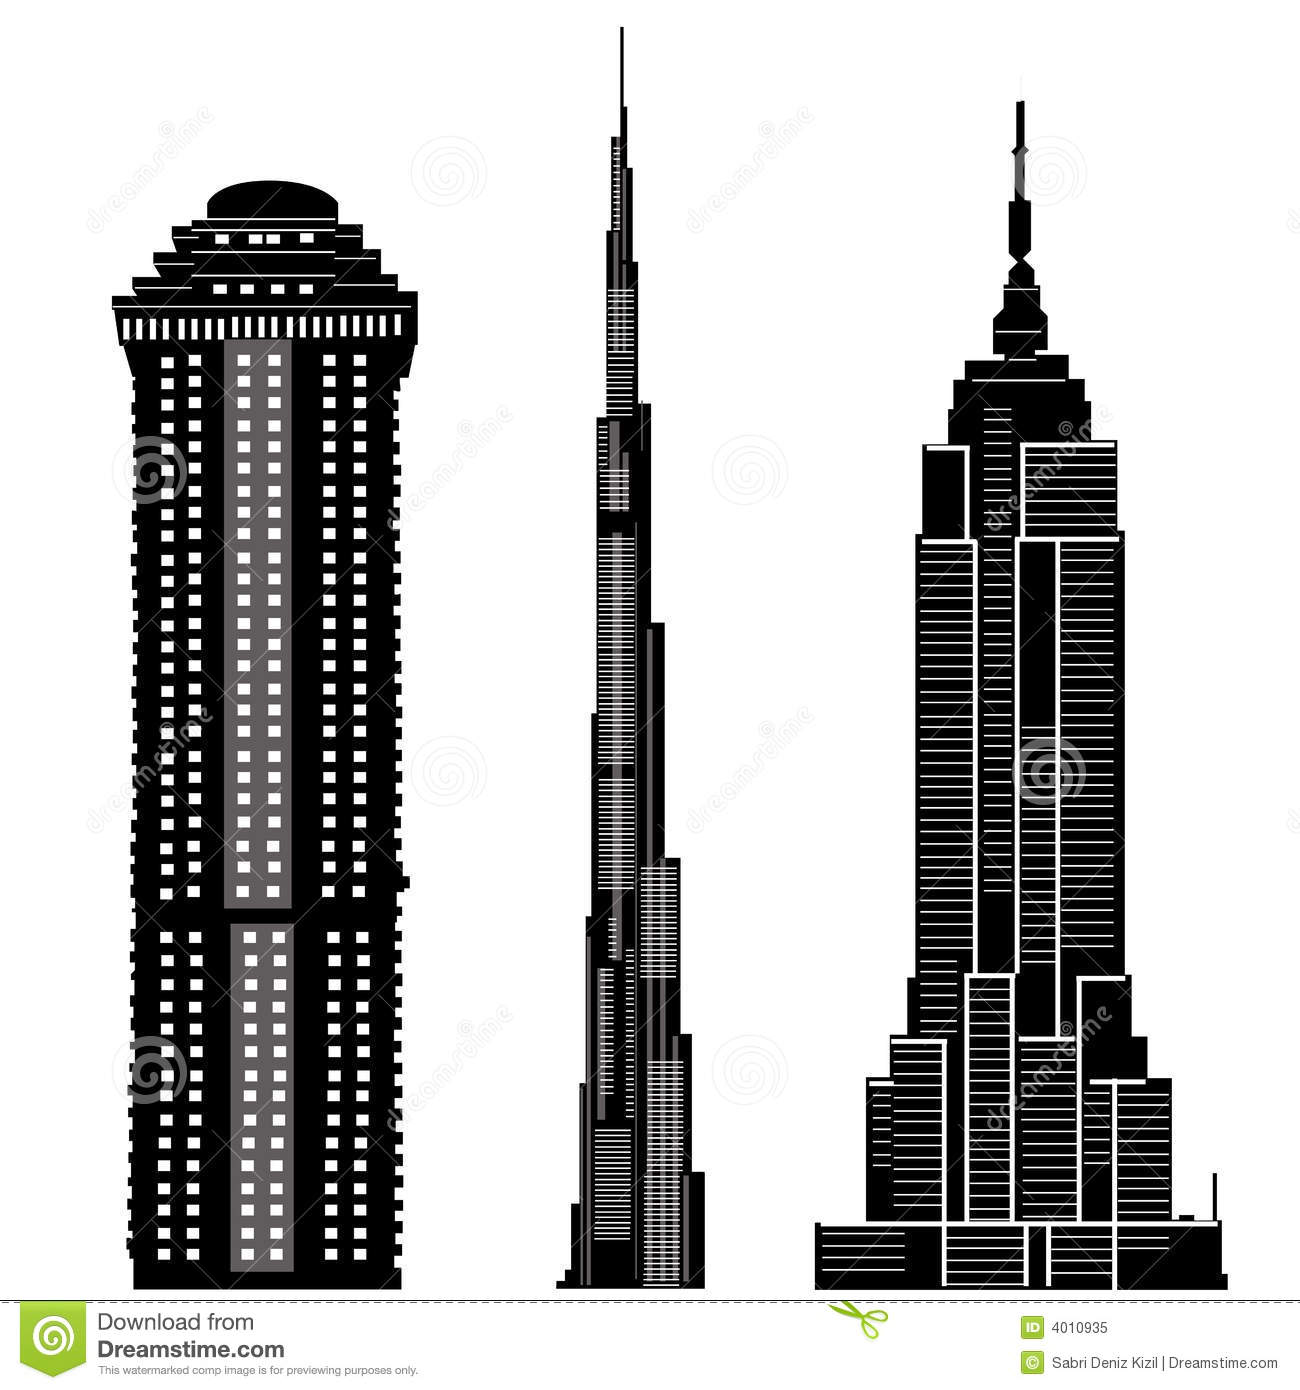 Skyscraper clipart #4, Download drawings